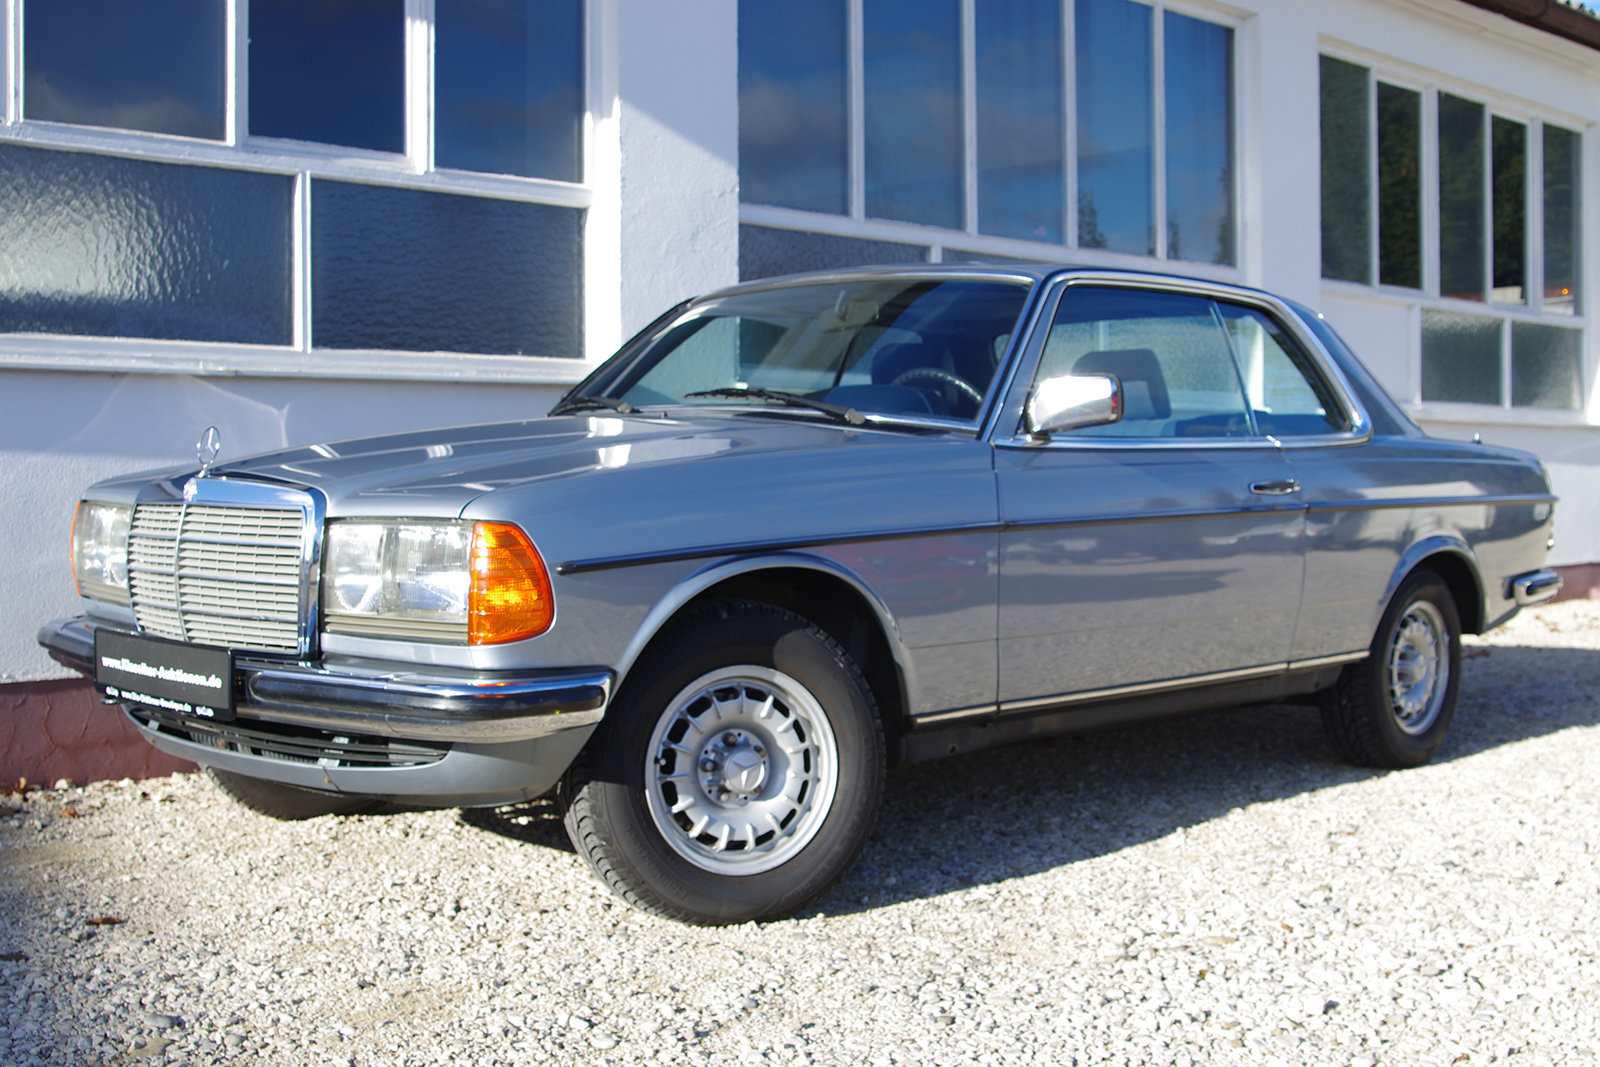 1983 Mercedes-Benz 230 CE - C123 - LHD - only 3 owners in 35 year SOLD (picture 1 of 6)